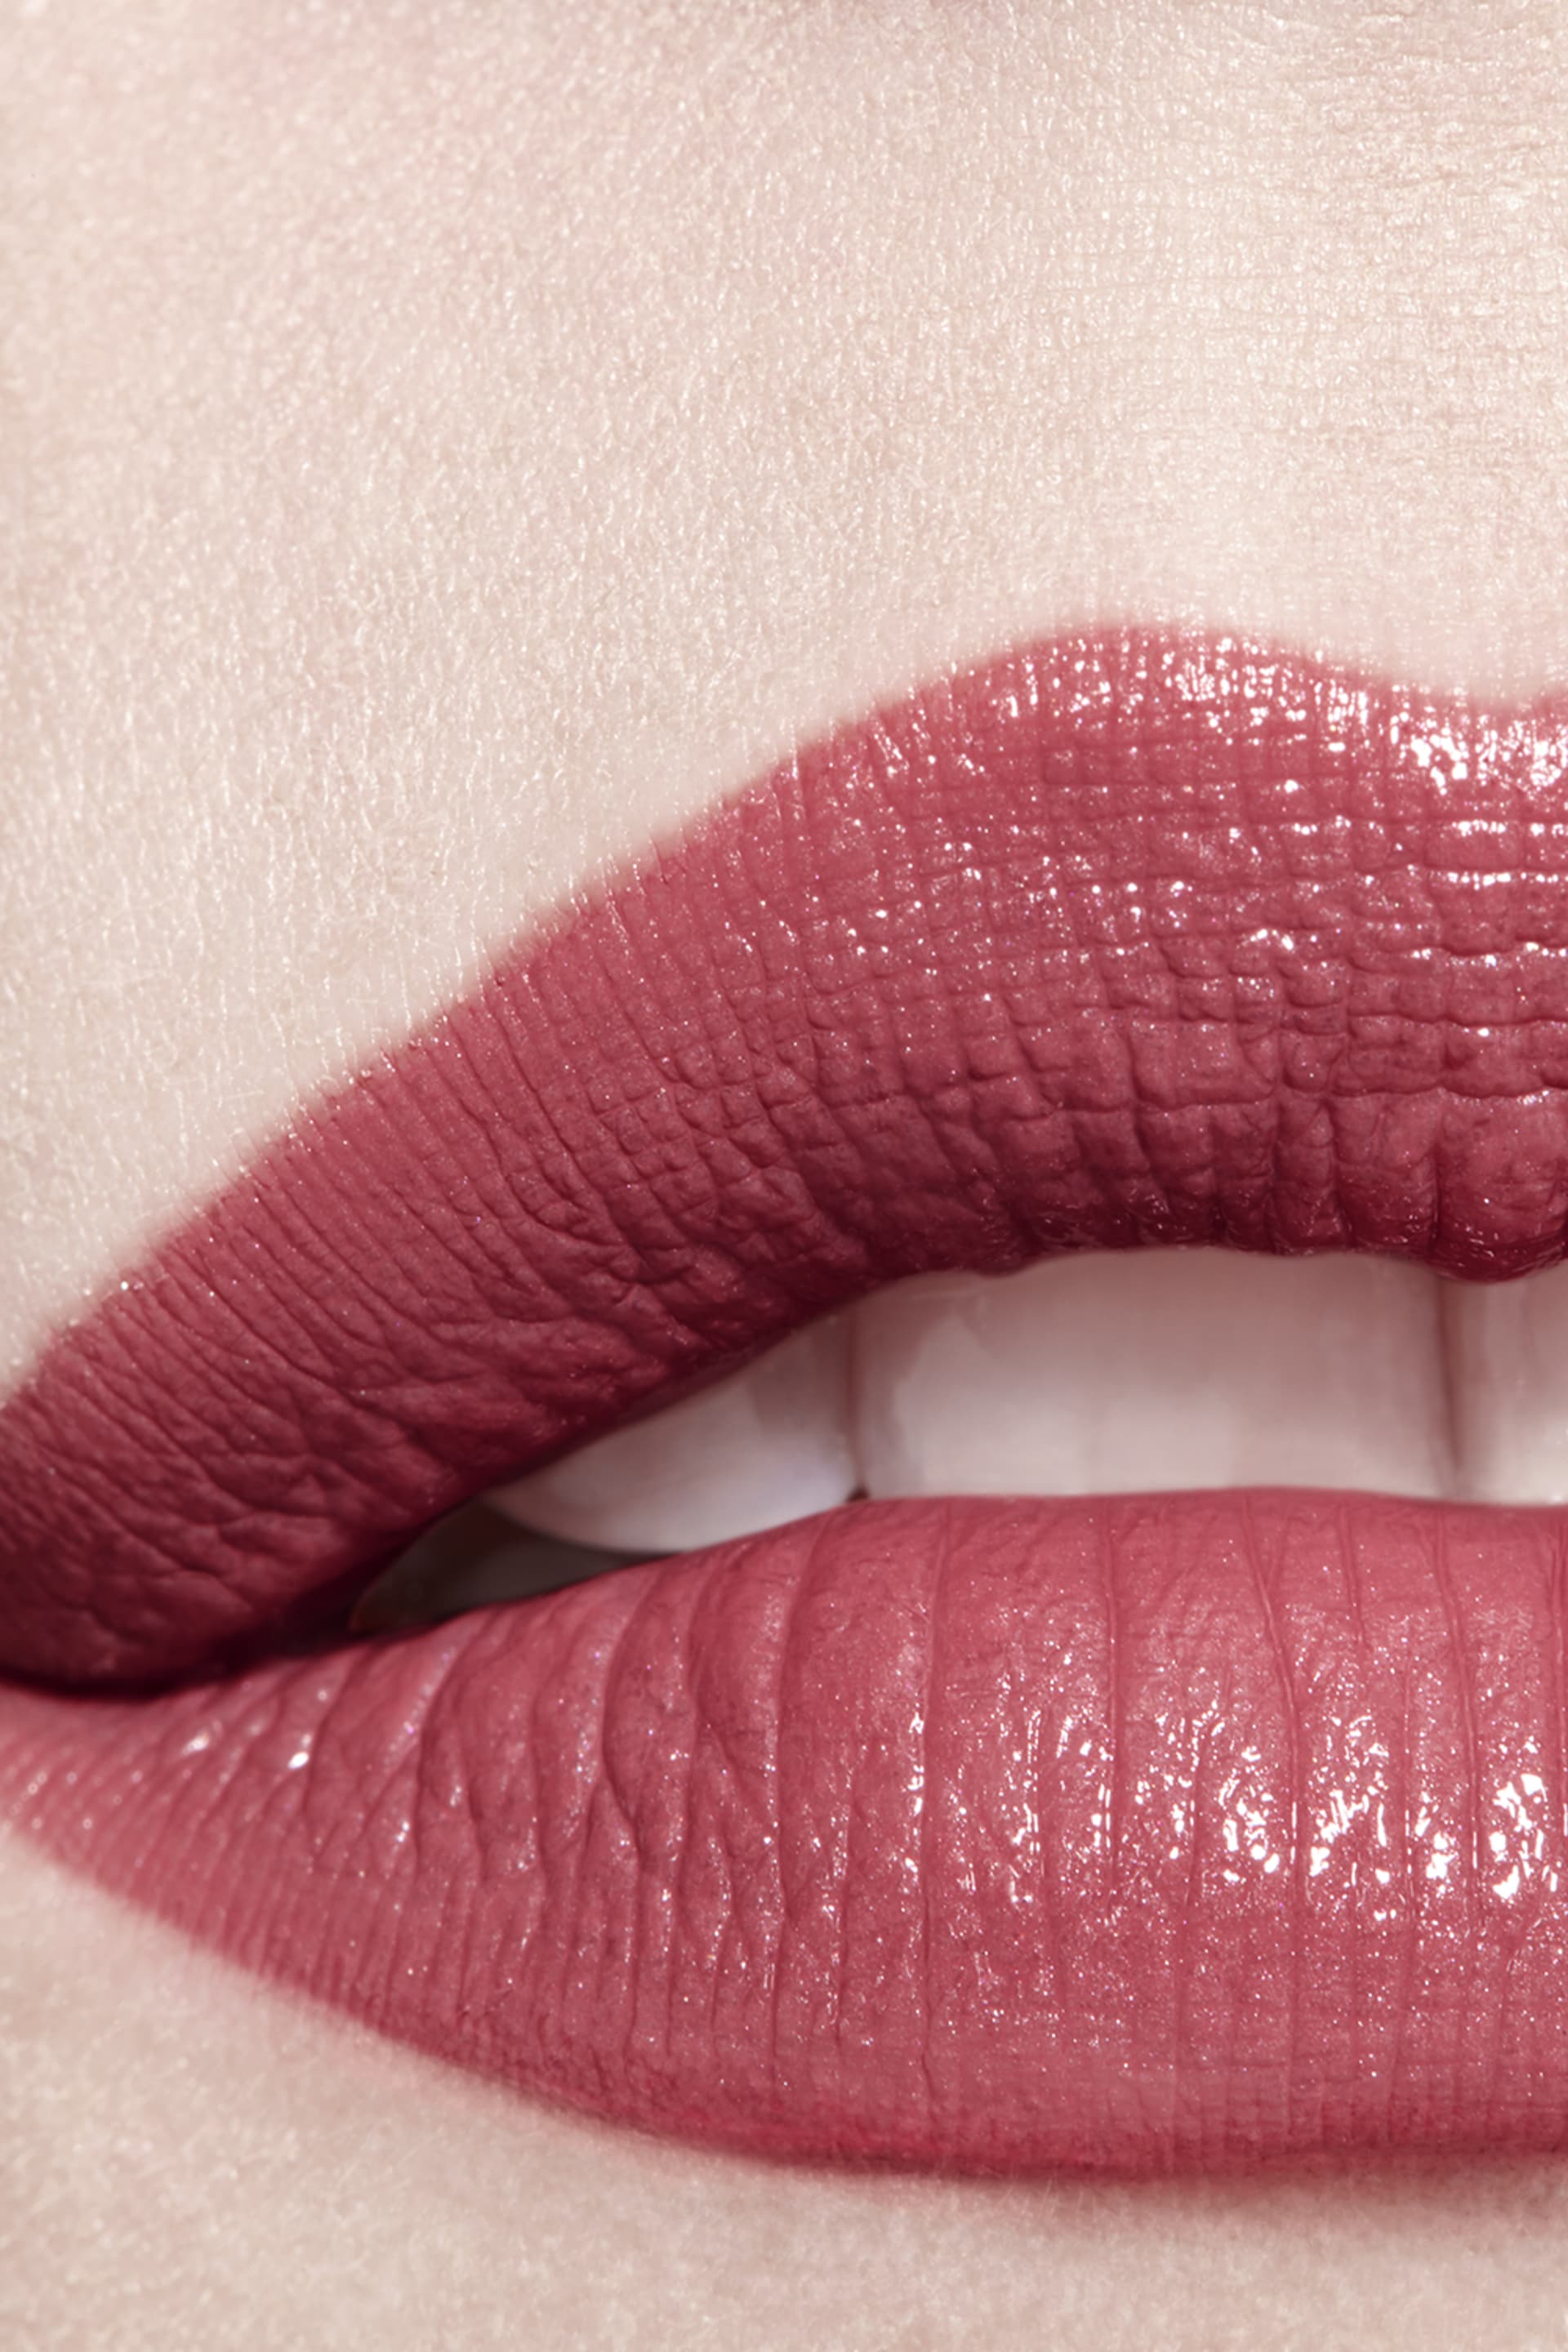 Application makeup visual 3 - ROUGE COCO 430 - MARIE